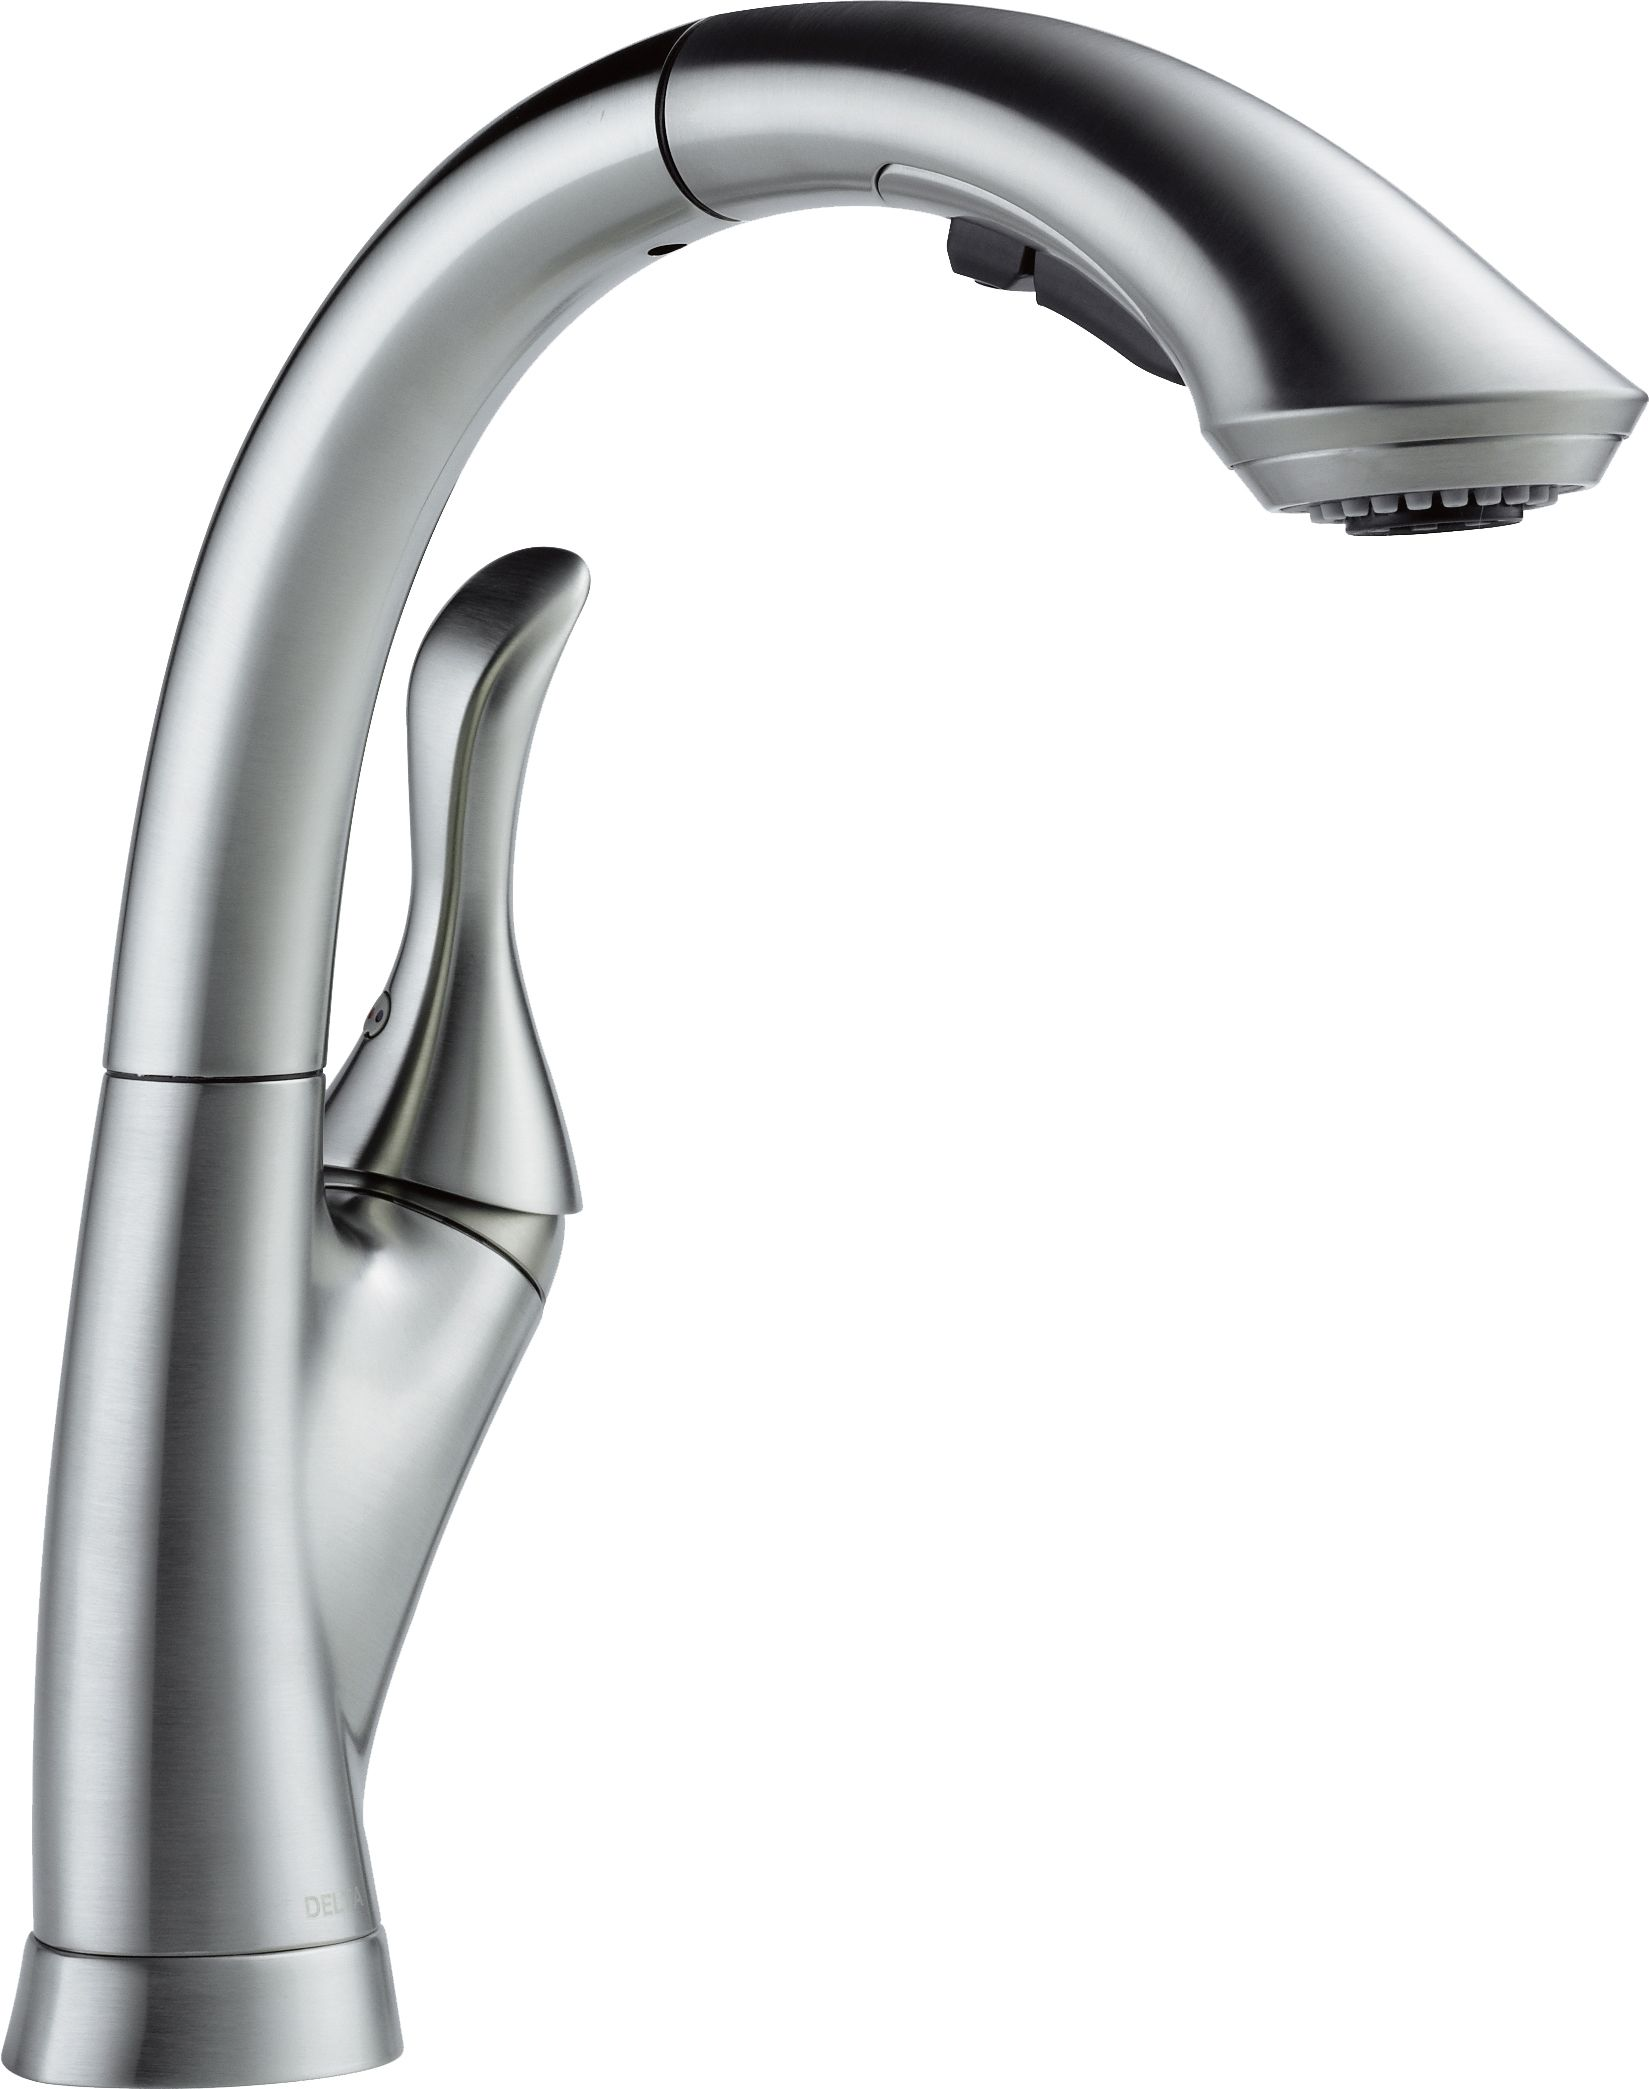 delta 4153 ar dst arctic stainless linden pull out kitchen faucet with temporary flow increase and optional base plate includes lifetime warranty - Pull Out Kitchen Faucet